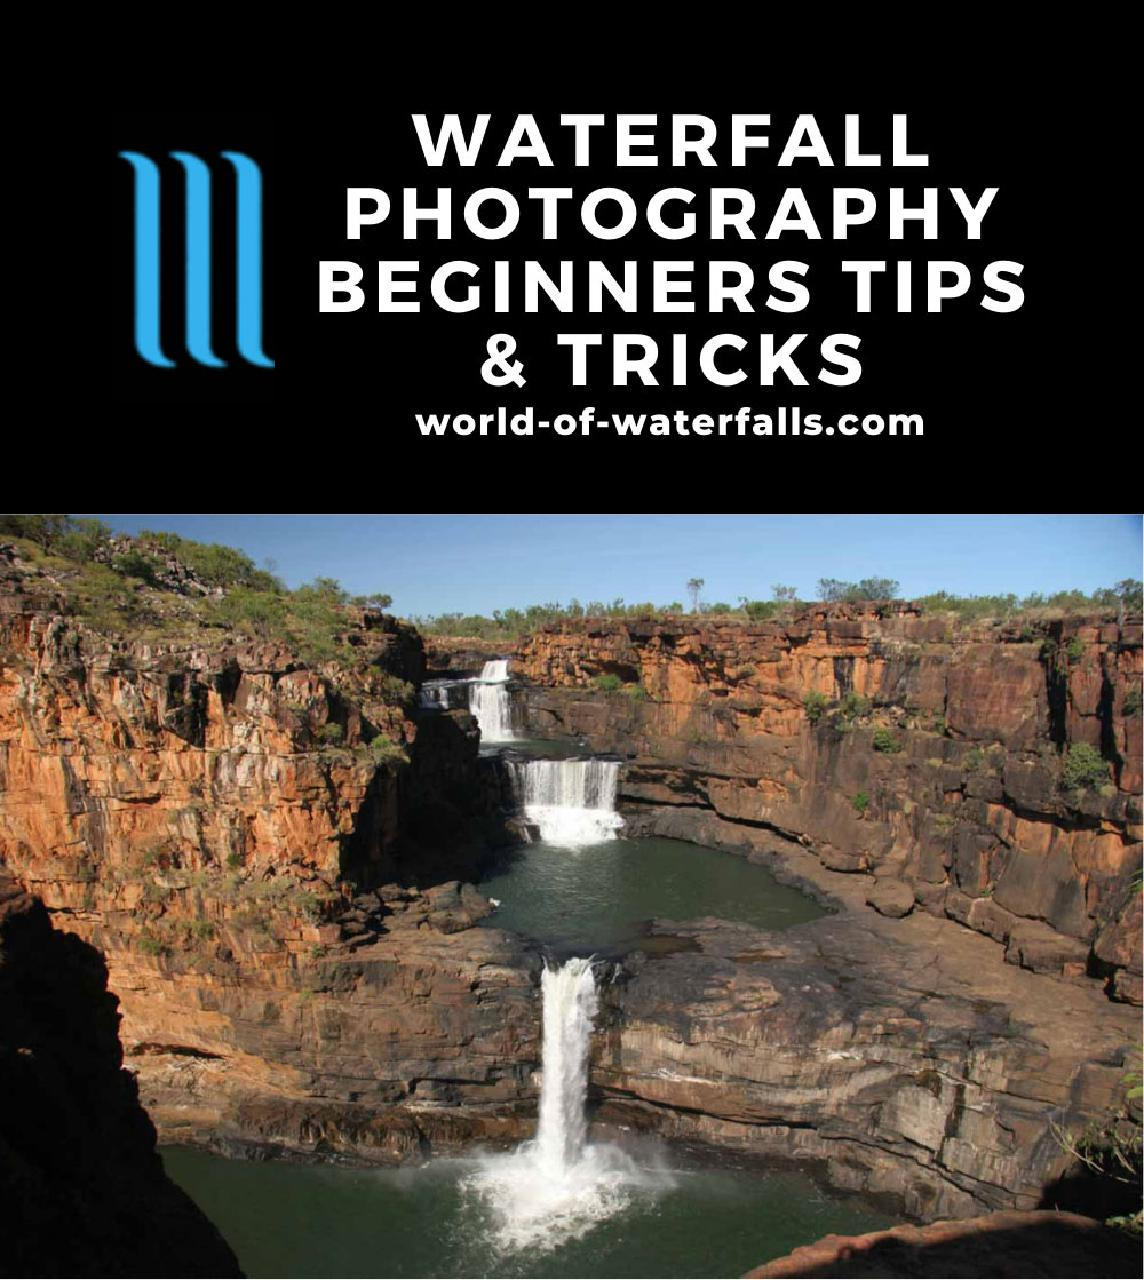 Waterfall Photography Beginner Tips and Tricks